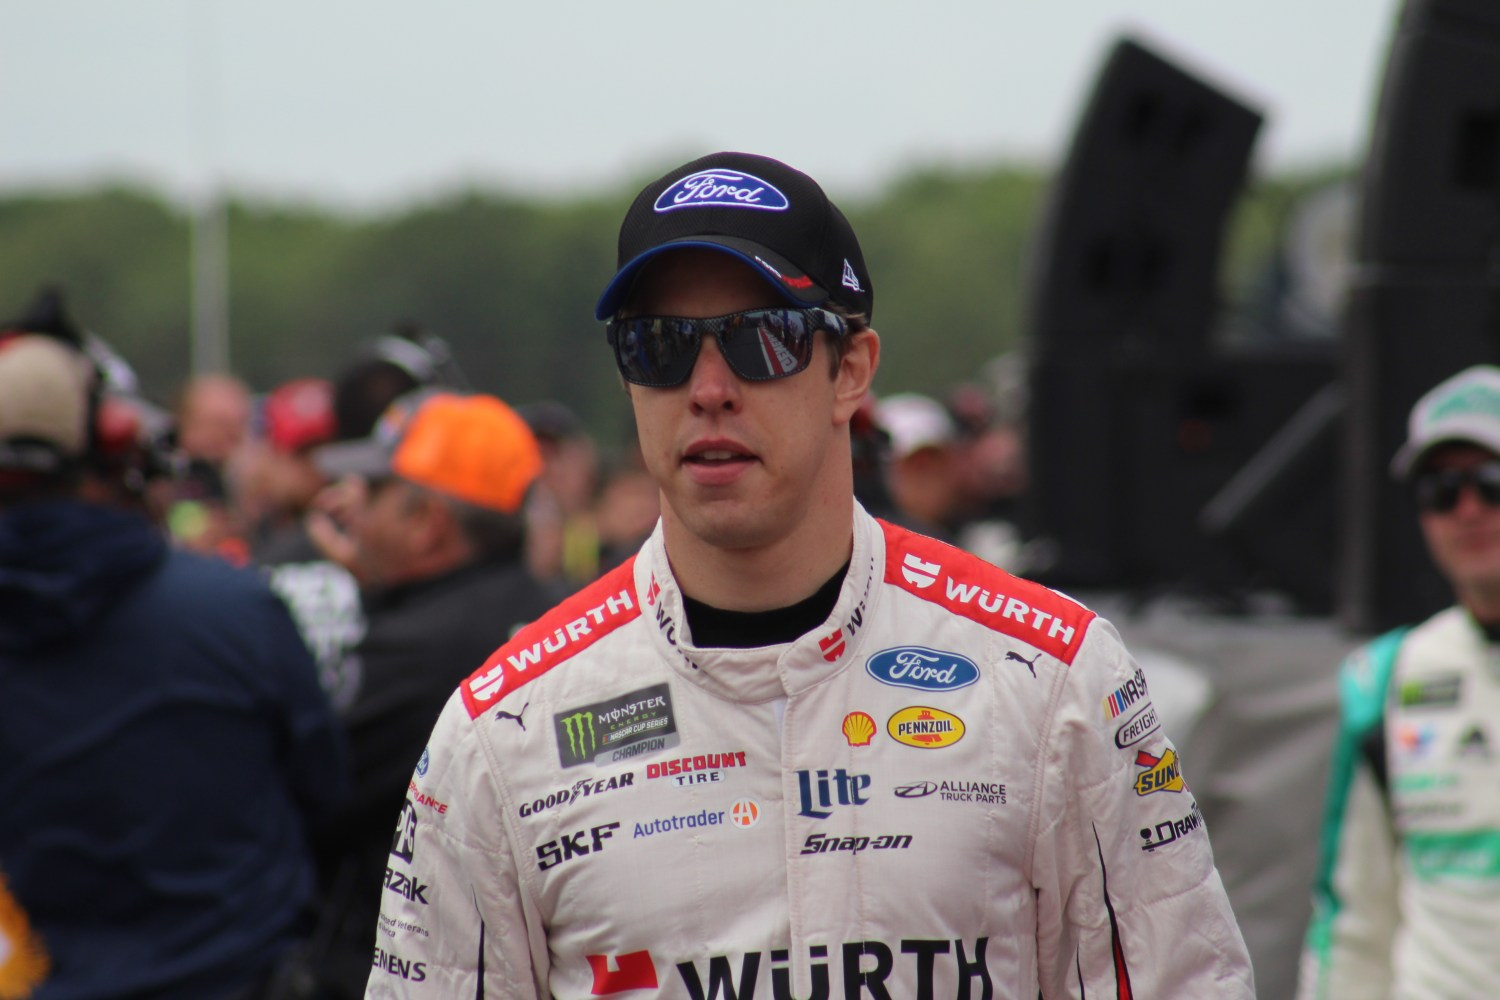 Brad Keselowski walks during driver introductions for the 2018 Pocono 400. (Tyler Head | The Racing Experts)